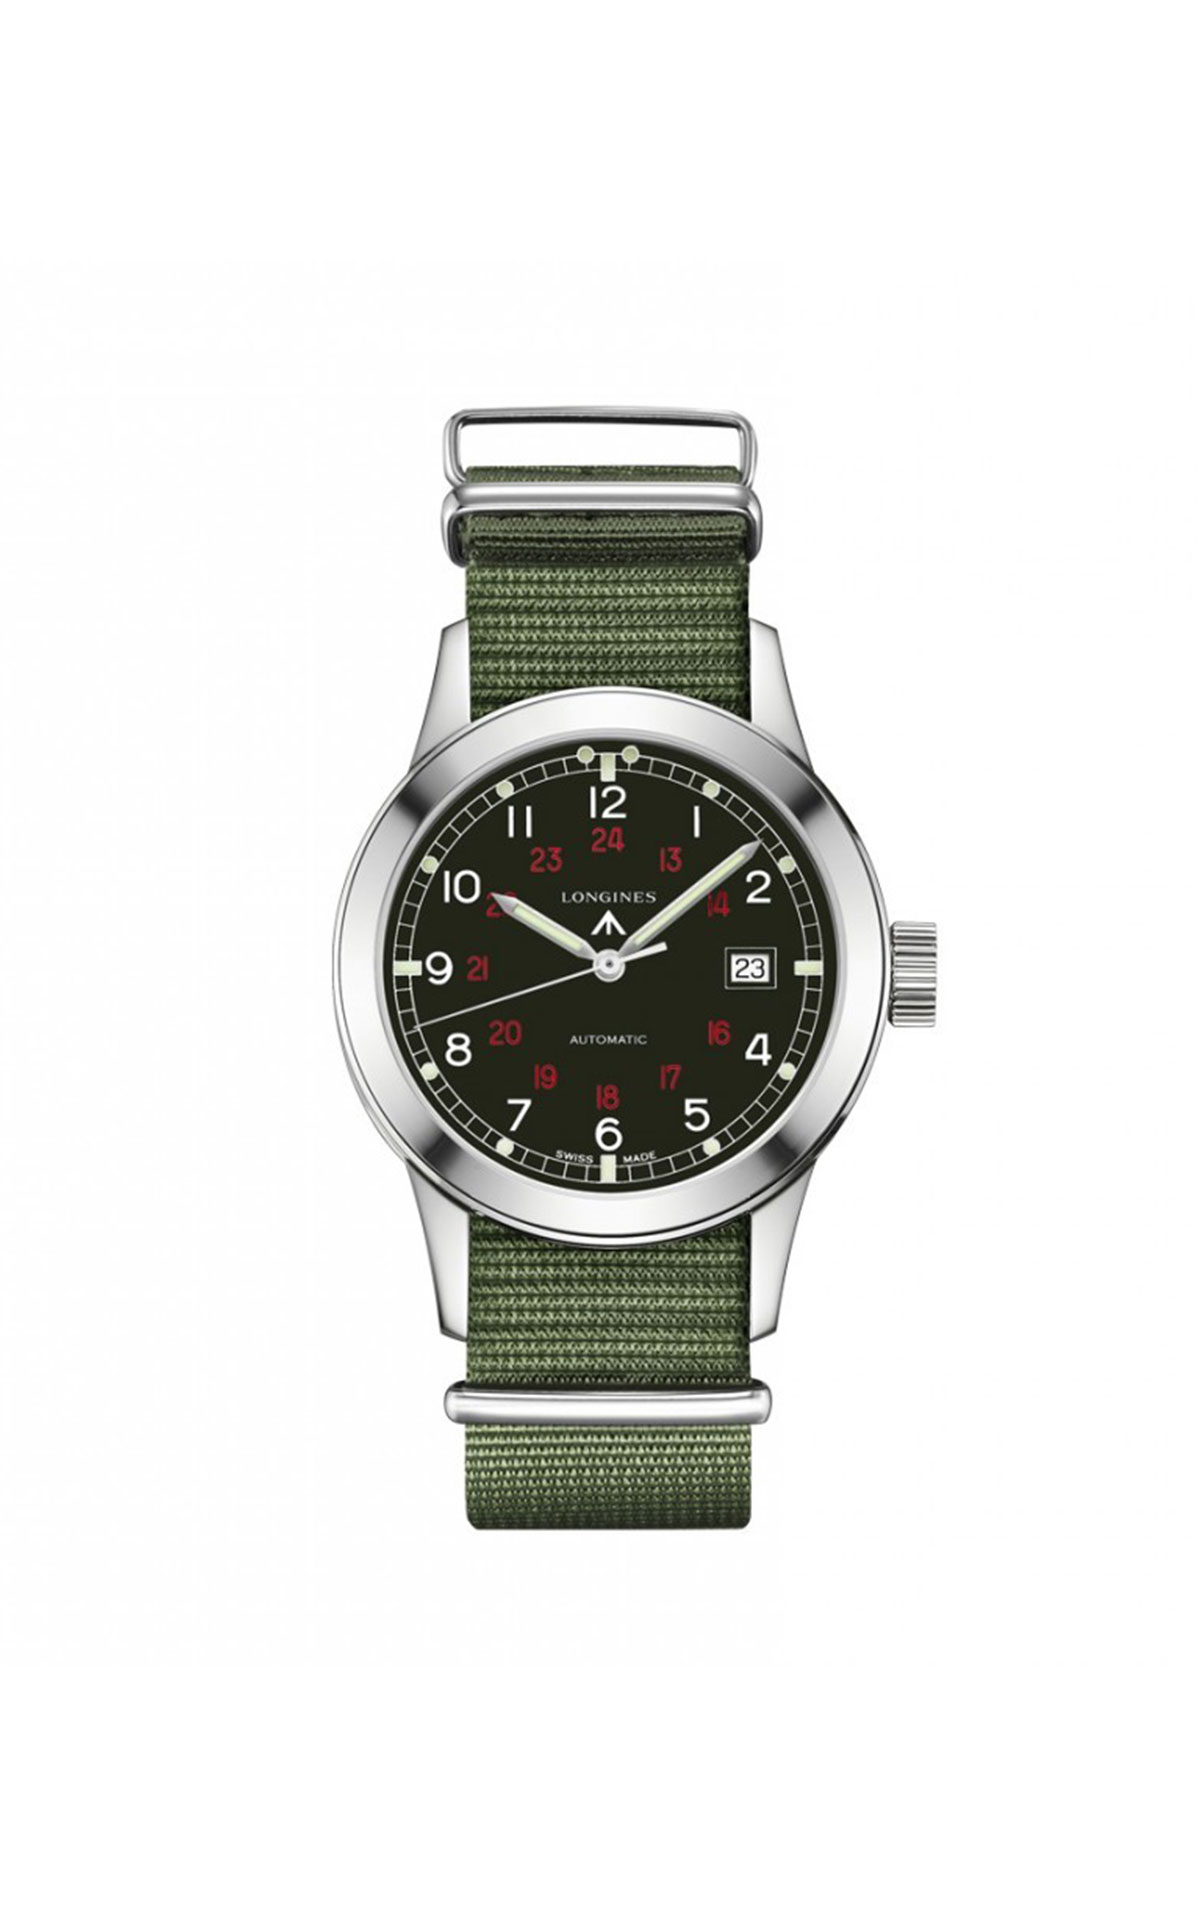 Hour Passion Longines green fabric strap watch from Bicester Village